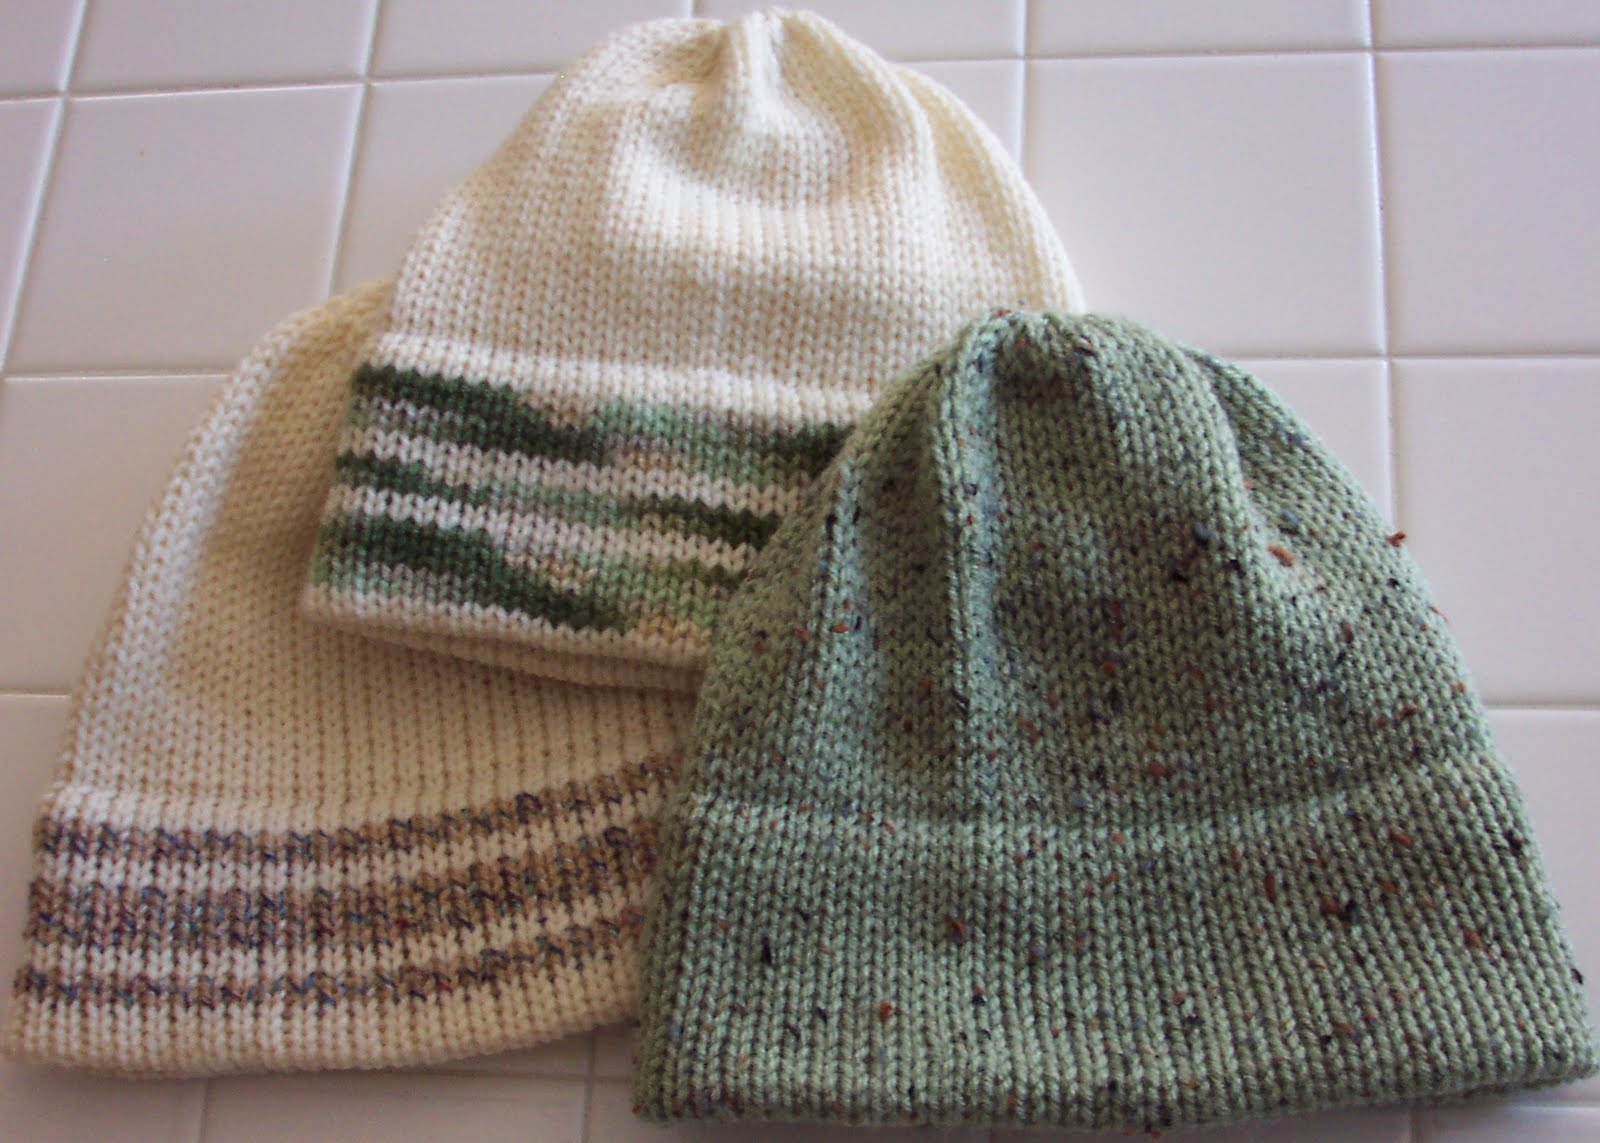 Knitting Pattern For Soldiers Hats : Diana natters on... about machine knitting: Project Photos